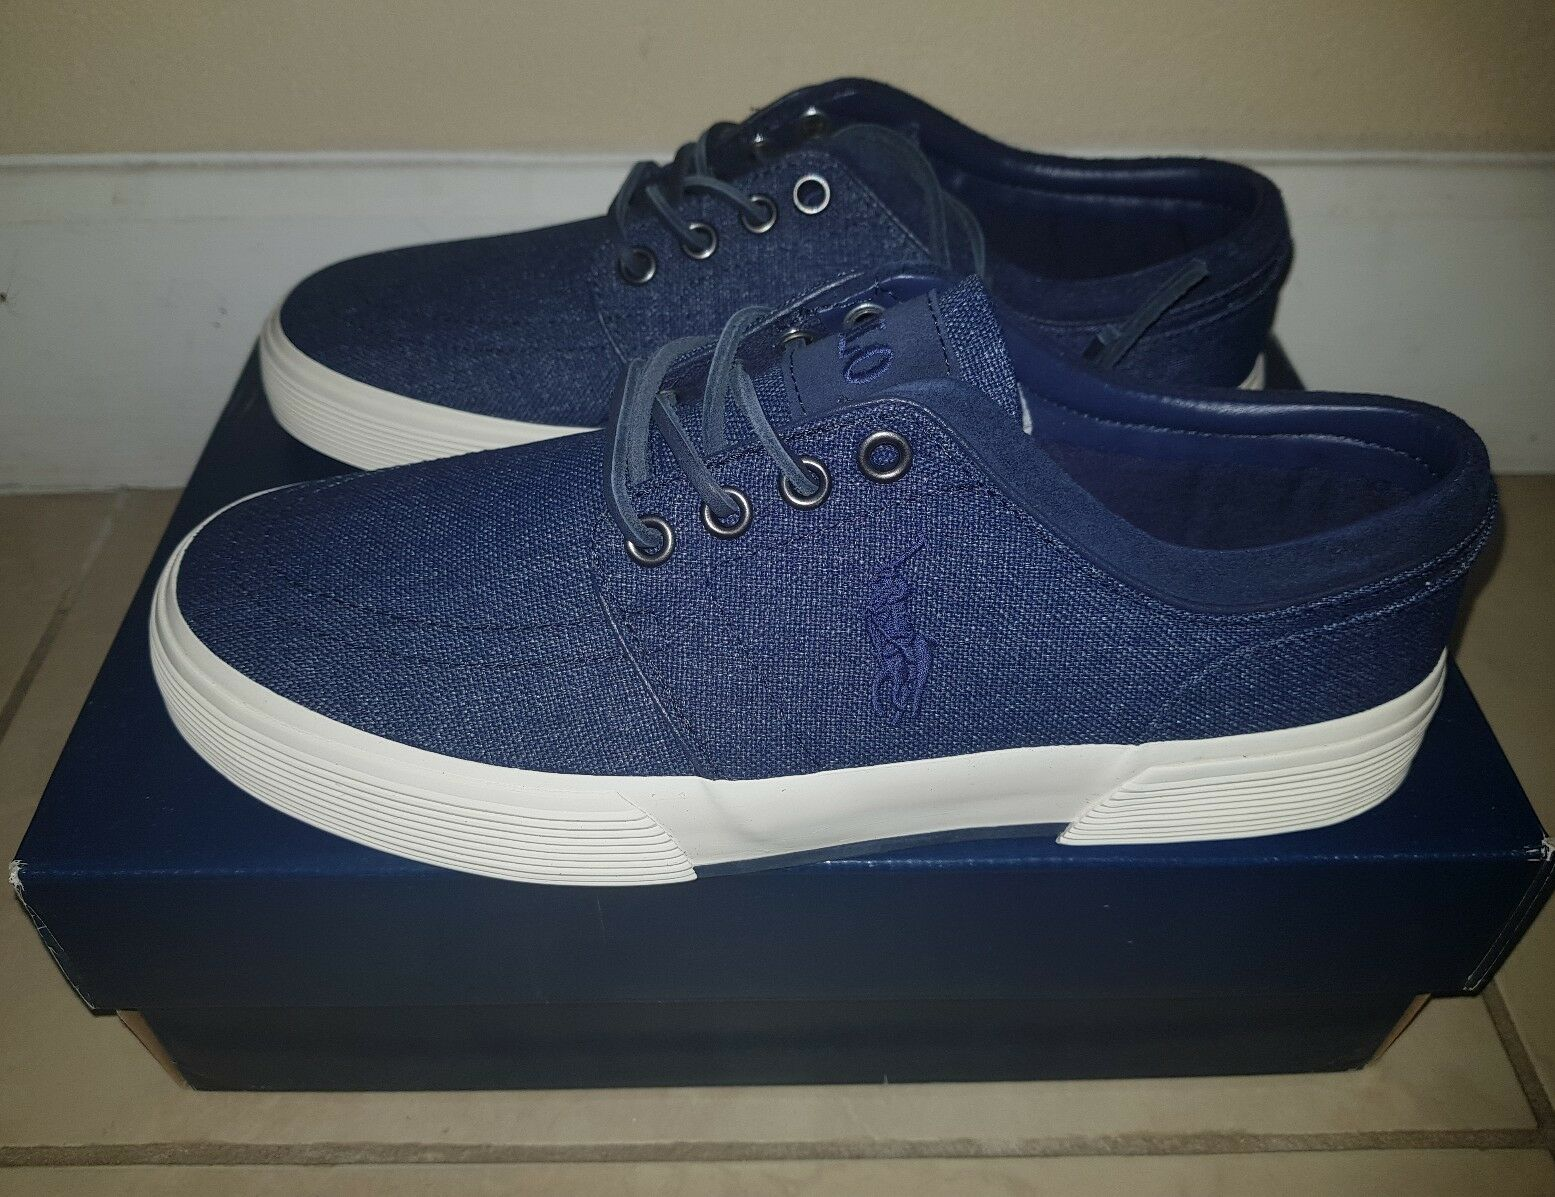 POLO RALPH LAUREN FAXON LOW  NWT NVY IN BOX NEW 7 USA  6 UK